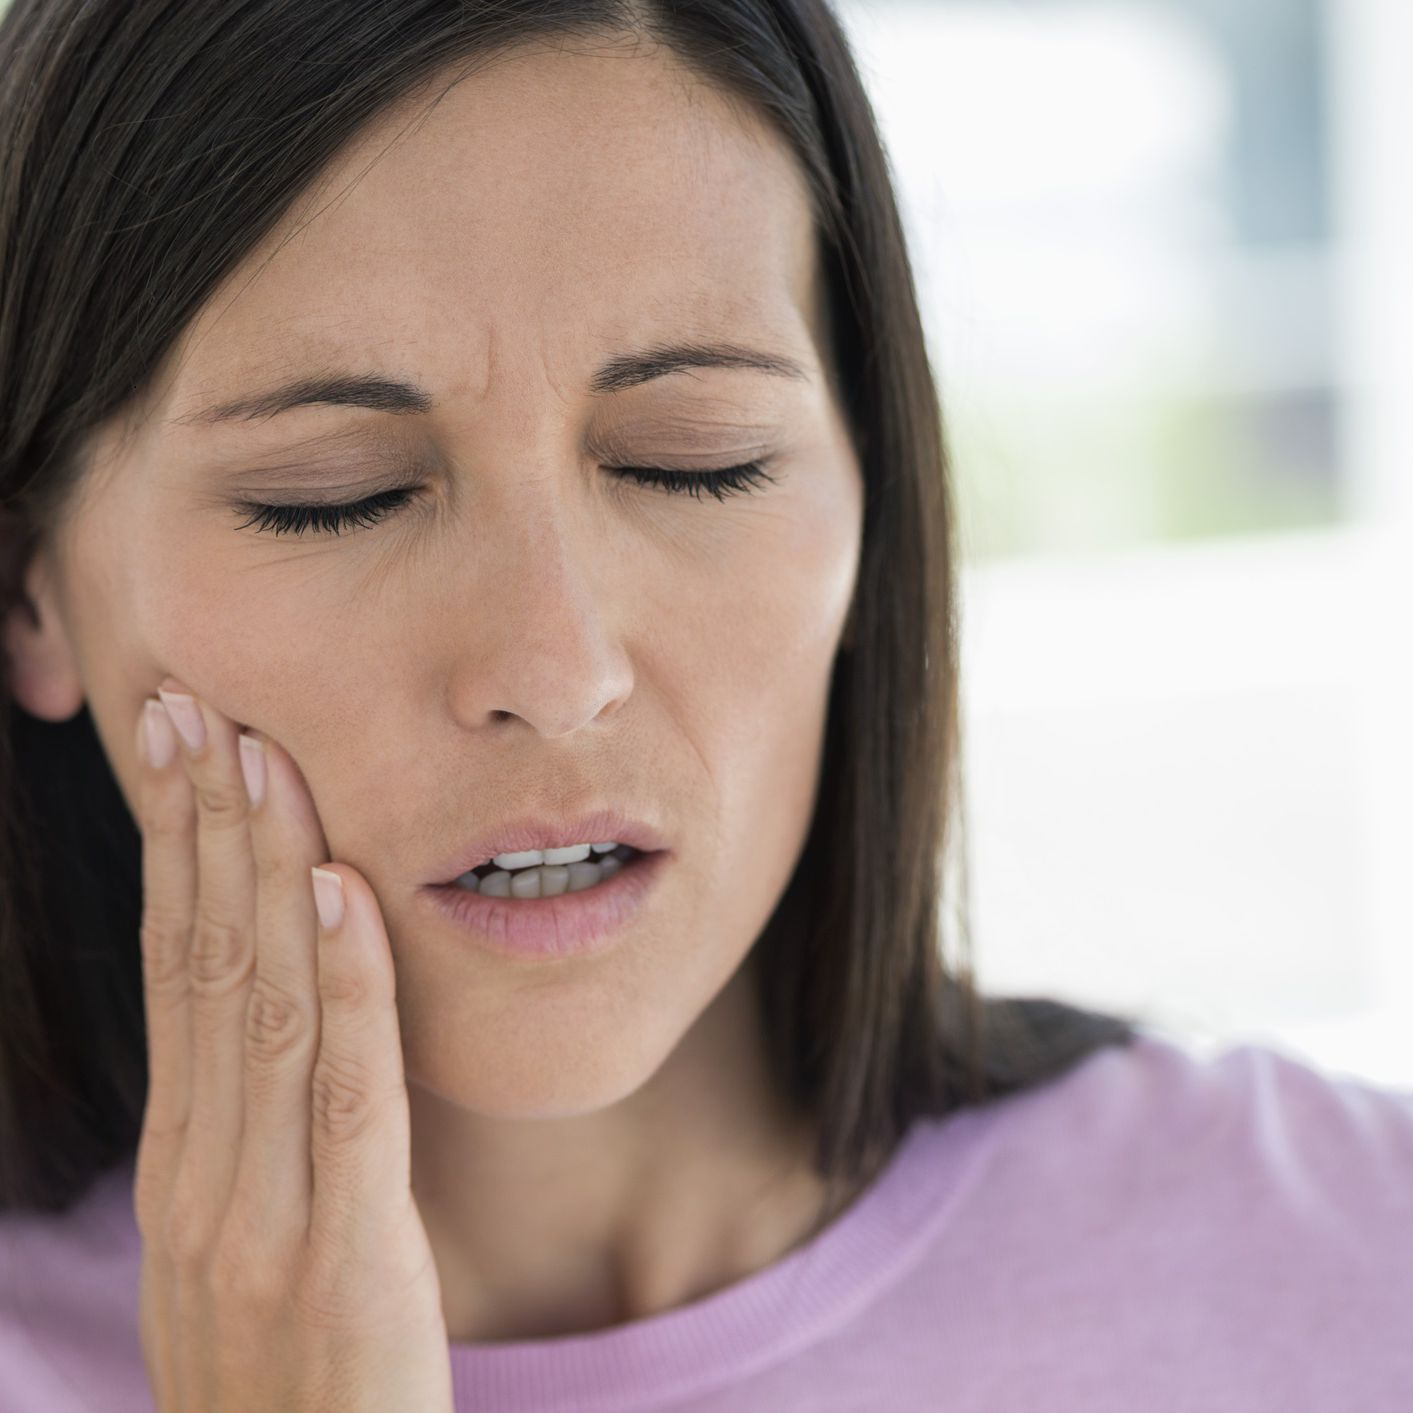 Abscessed Tooth: Symptoms, Causes, Diagnosis, and Treatment